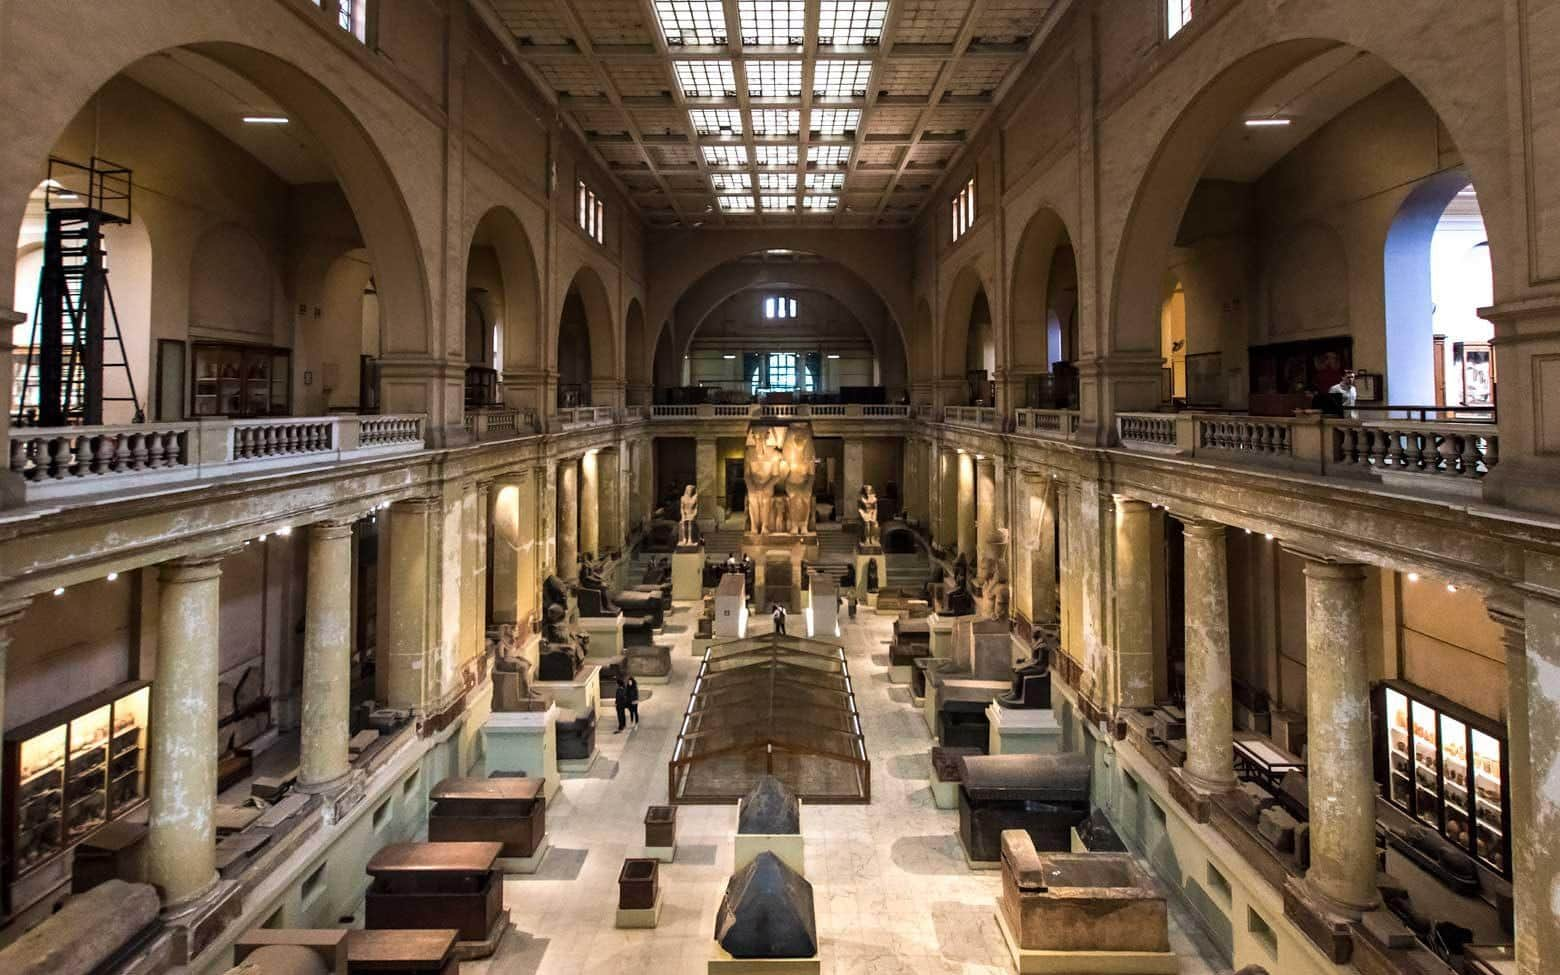 What to see in Cairo - the Egyptian Museum - panorama pic from second floor